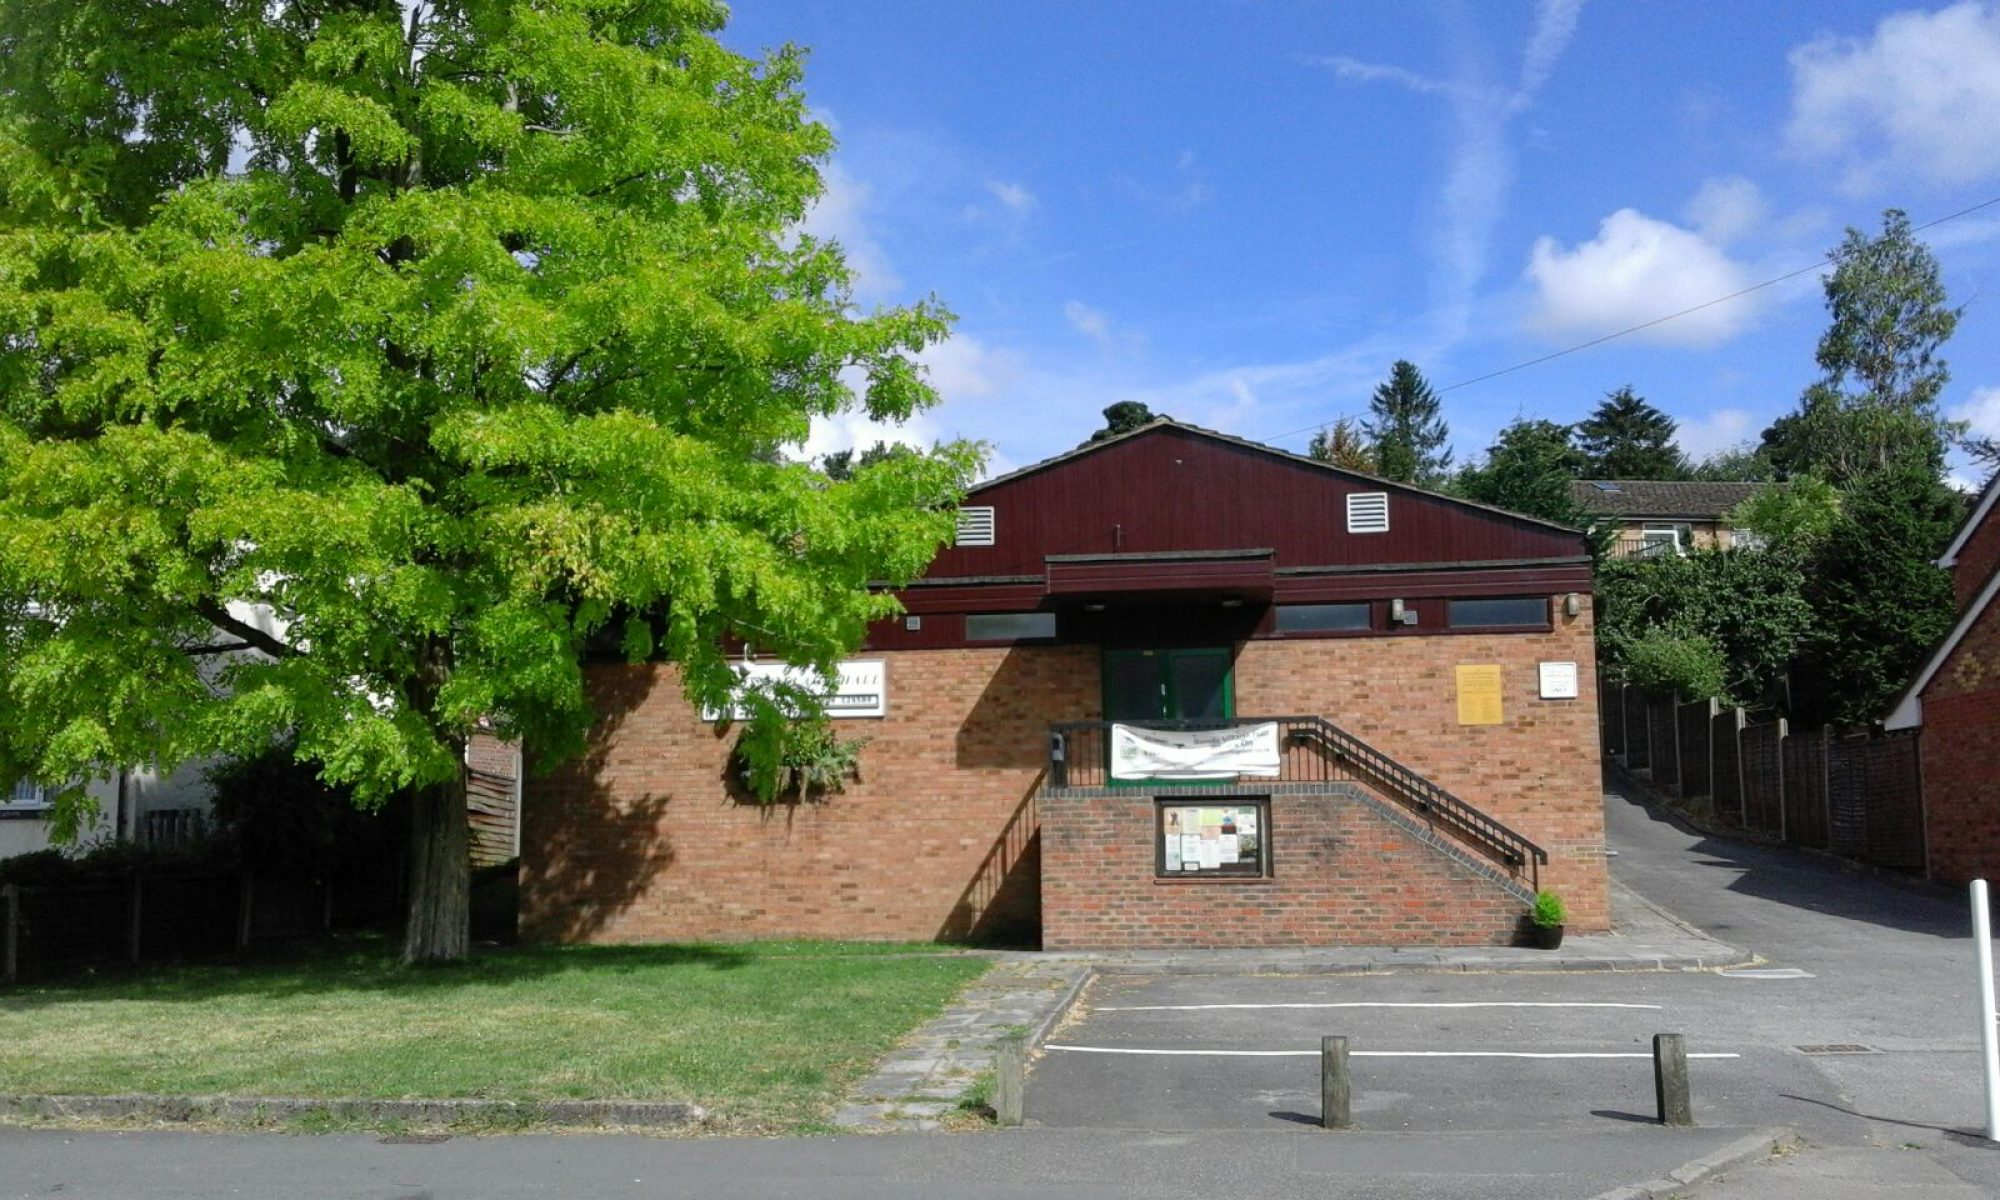 Sands Village Hall, High Wycombe